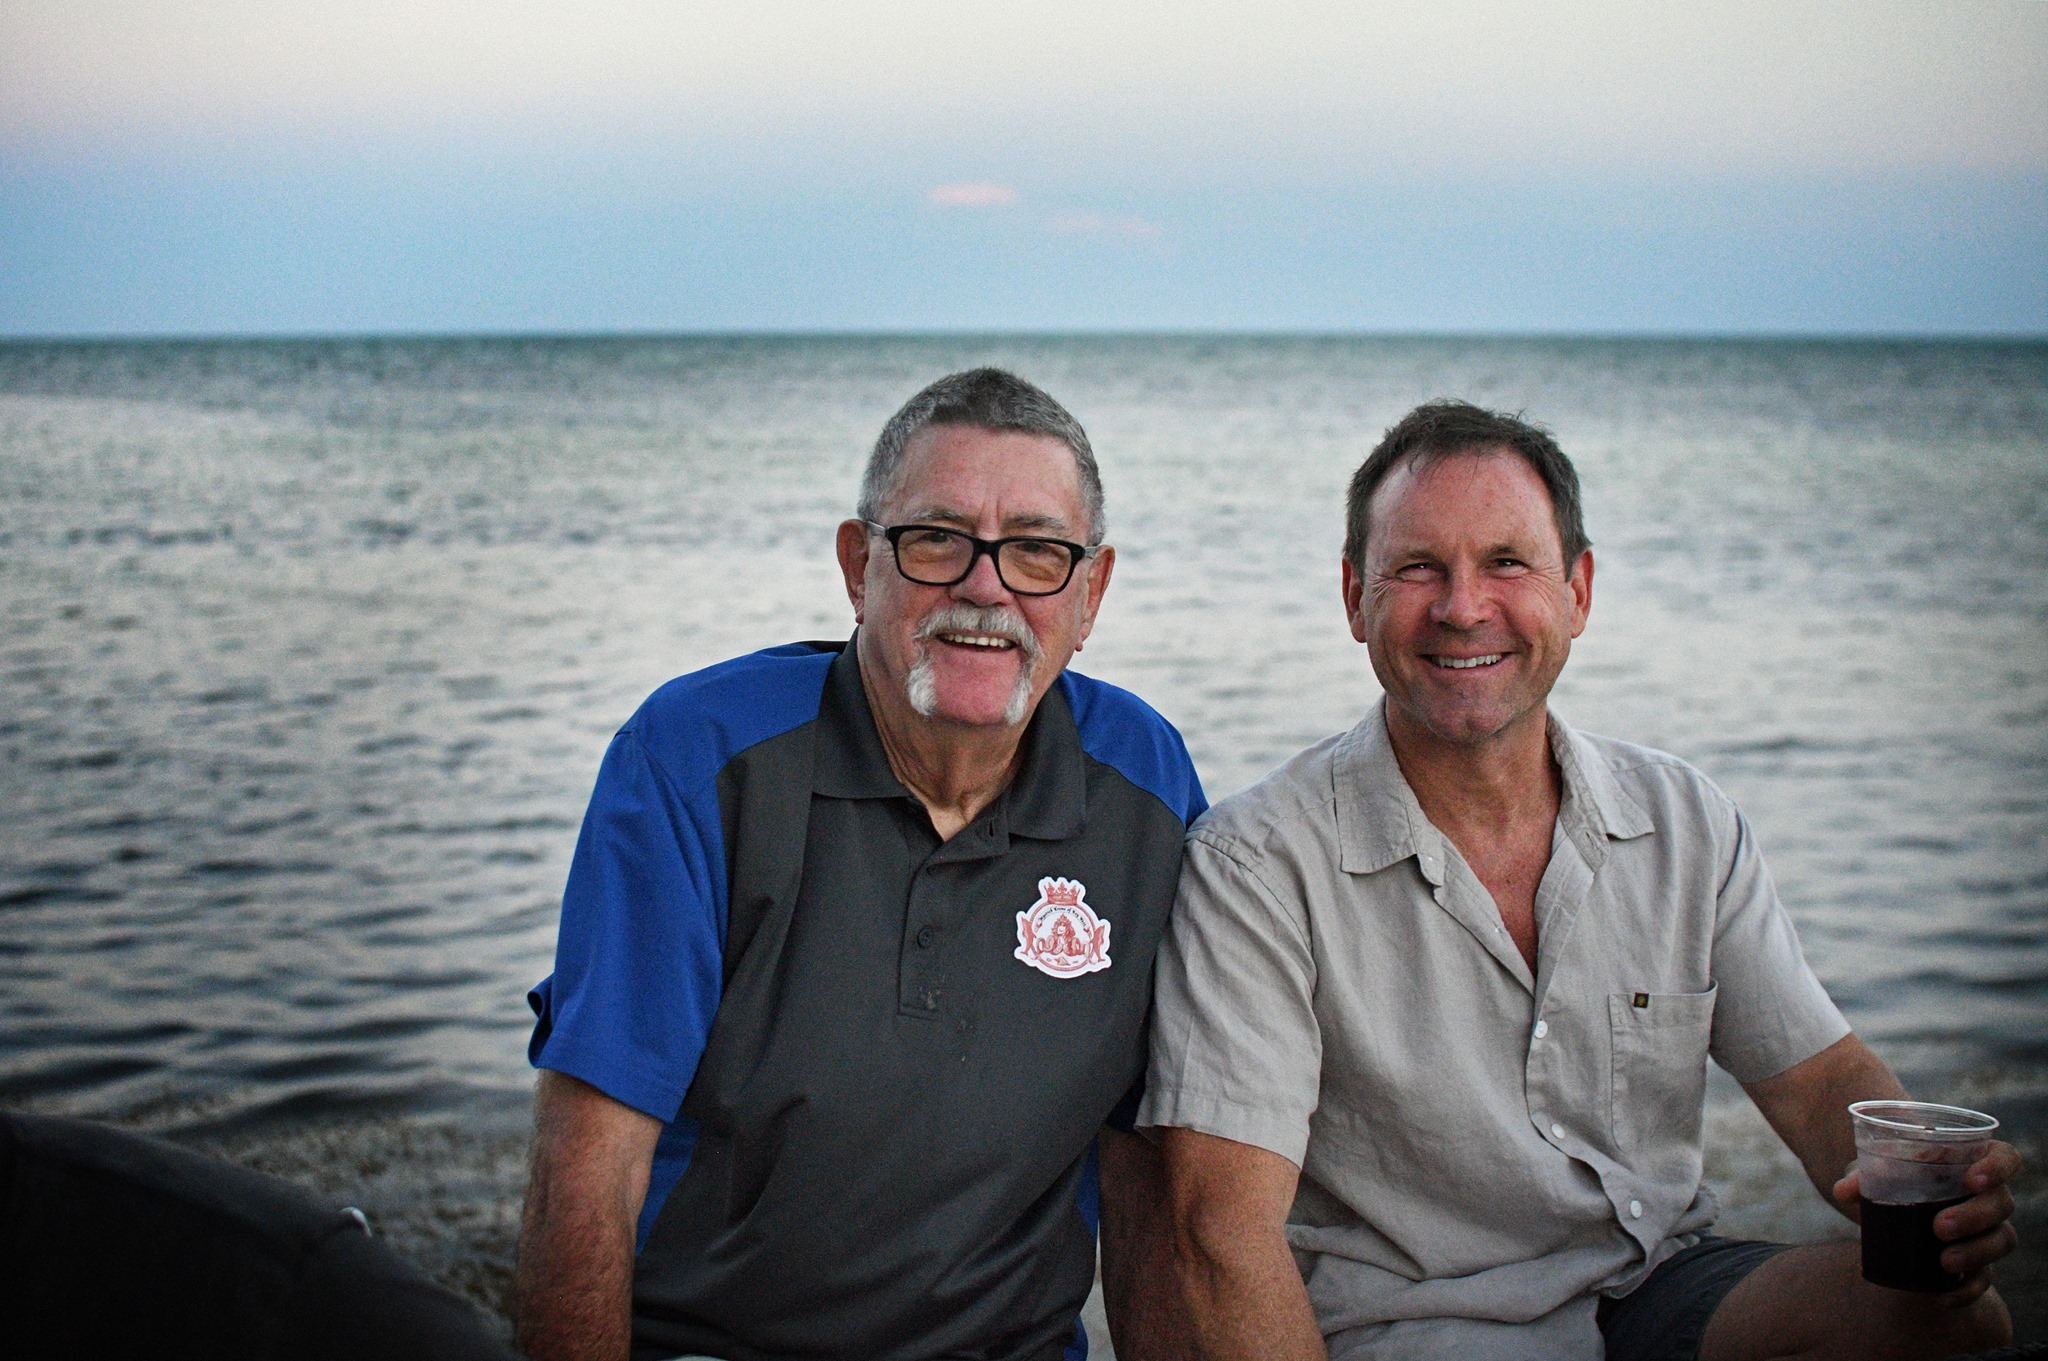 Larry Johnson & Todd German sitting by the ocean